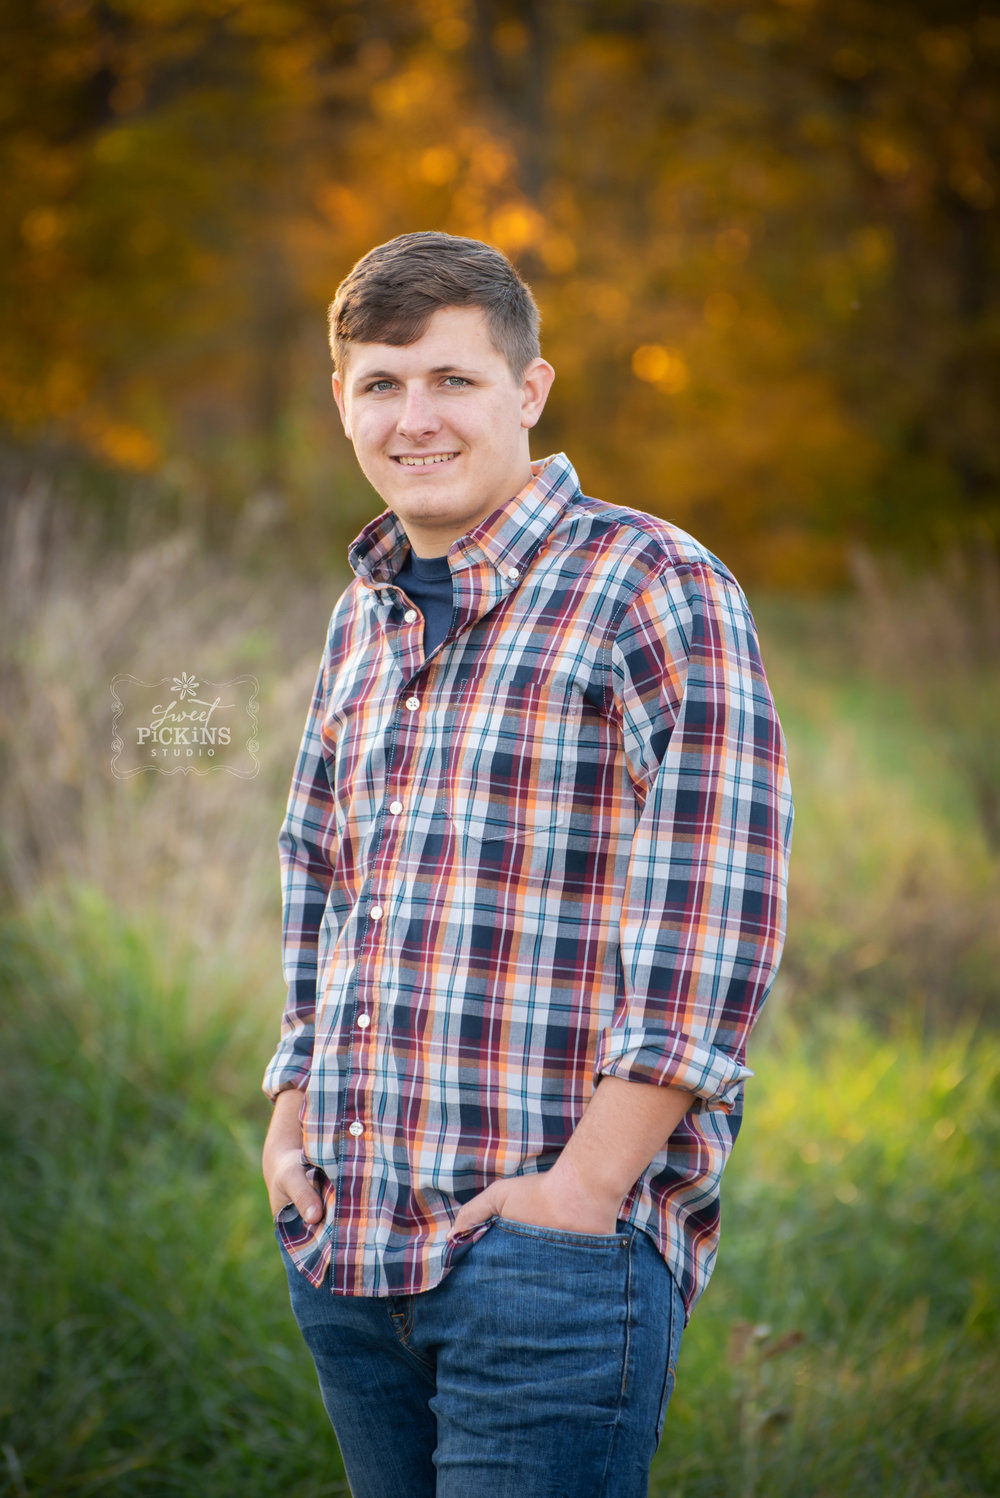 Peru, Indiana Senior Portrait Photography | Maconaquah Class of 2019 | Outdoor Fall Field